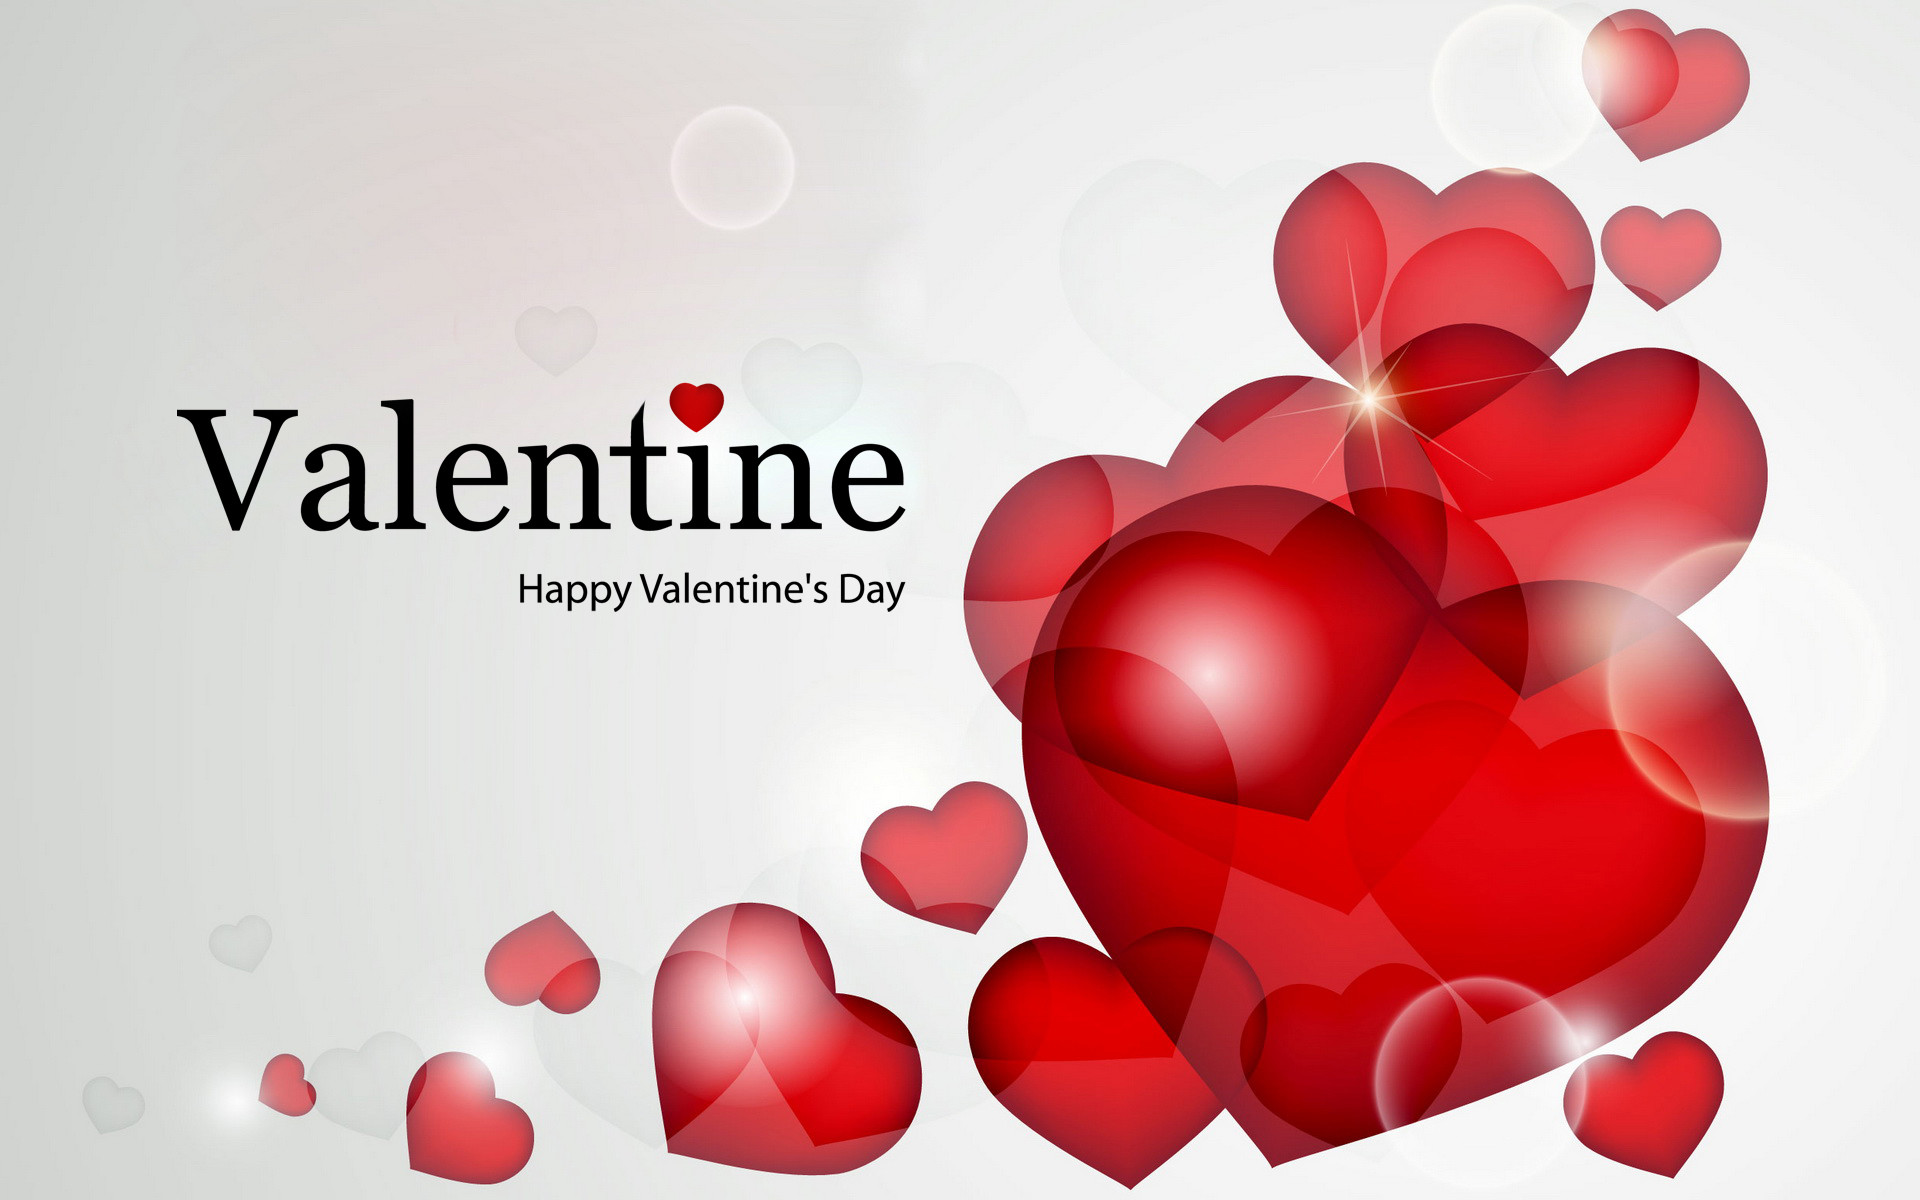 1920x1200 Valentines Day Wallpapers – Wallpapercraft Valentines Desktop Backgrounds  on WallpaperGet.com ...